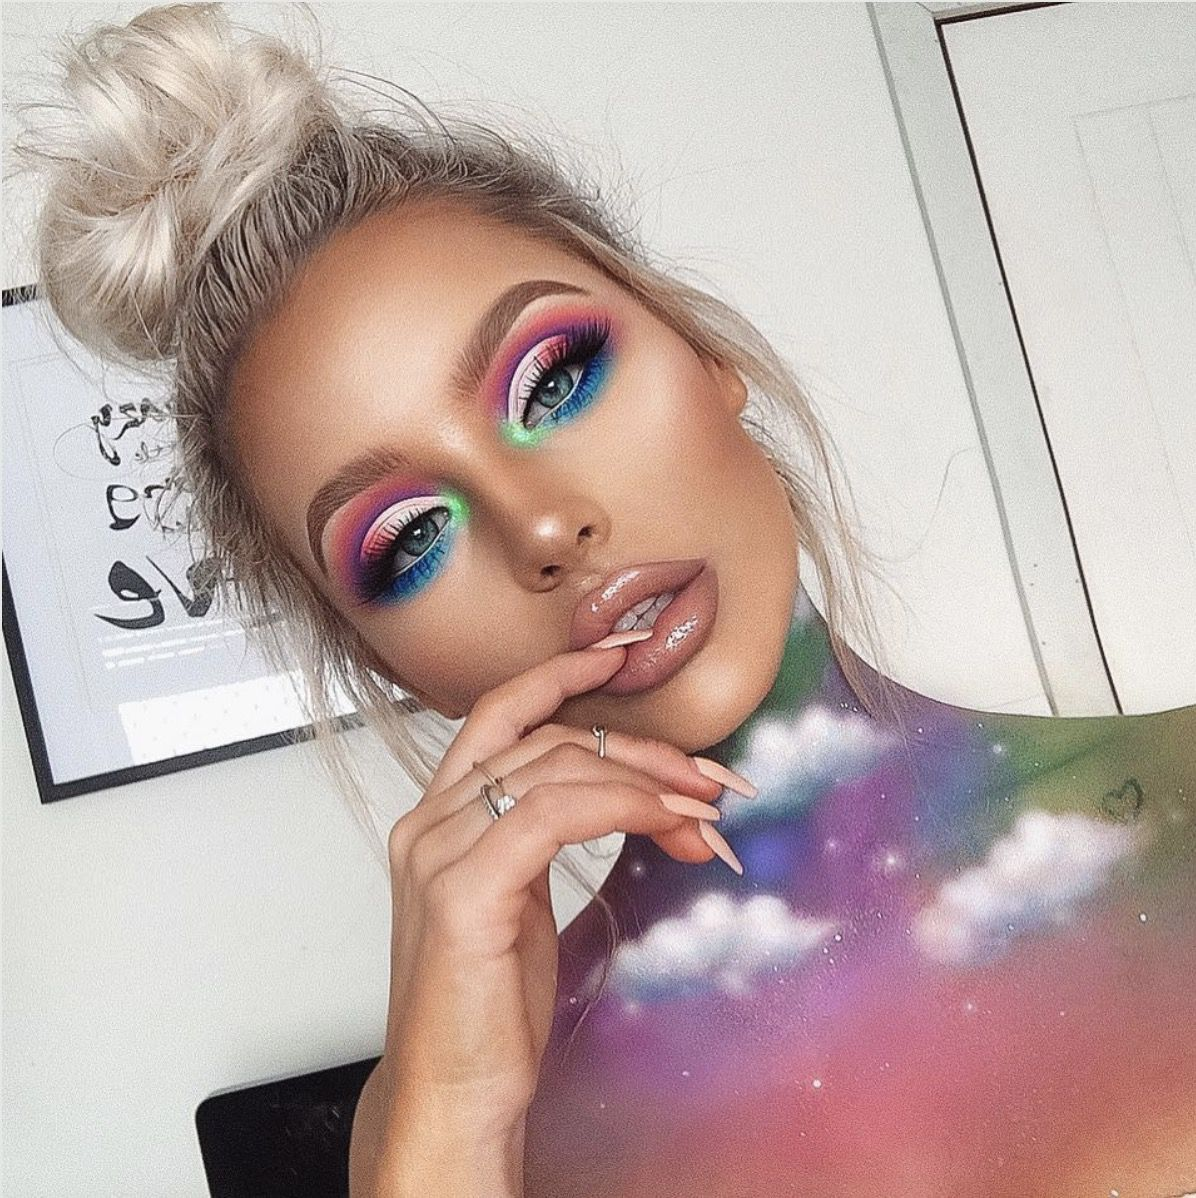 41 Most Jaw-Dropping Halloween Makeup Ideas That Are Still Pretty: Colorful Makeup / Click though to see more awe inspiring pretty Halloween makeup looks, gorgeous Halloween makeup and Halloween costumes. #halloweenmakeup #halloweenmakeuppretty #halloweencostumes #halloweenmakeupinspo #colorfulmakeup